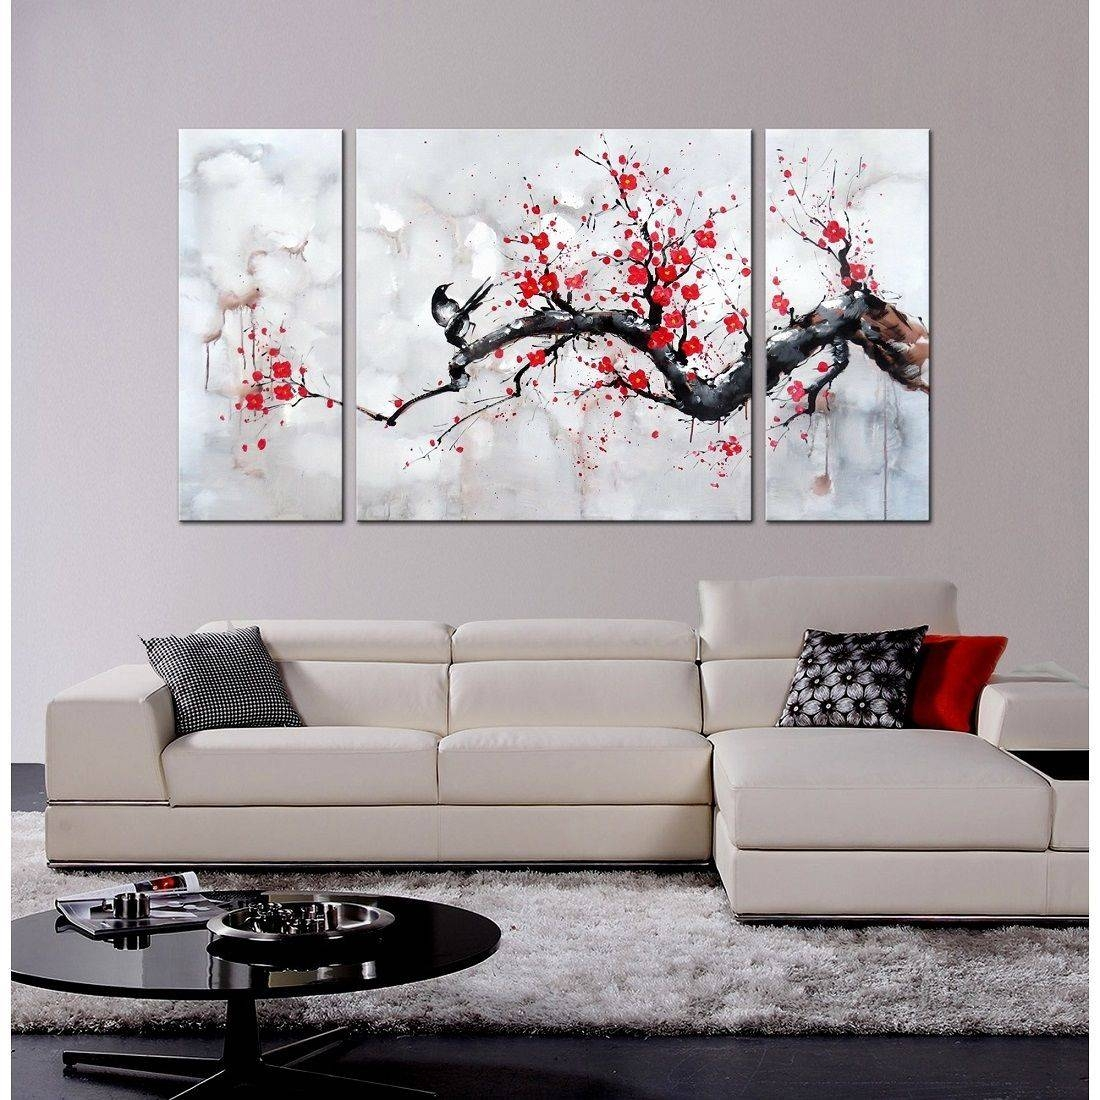 Japanese Syle Wall Art Red Plum Blossom Gallery Wrapped Canvas 3 Regarding Latest Japanese Wall Art Panels (View 5 of 25)